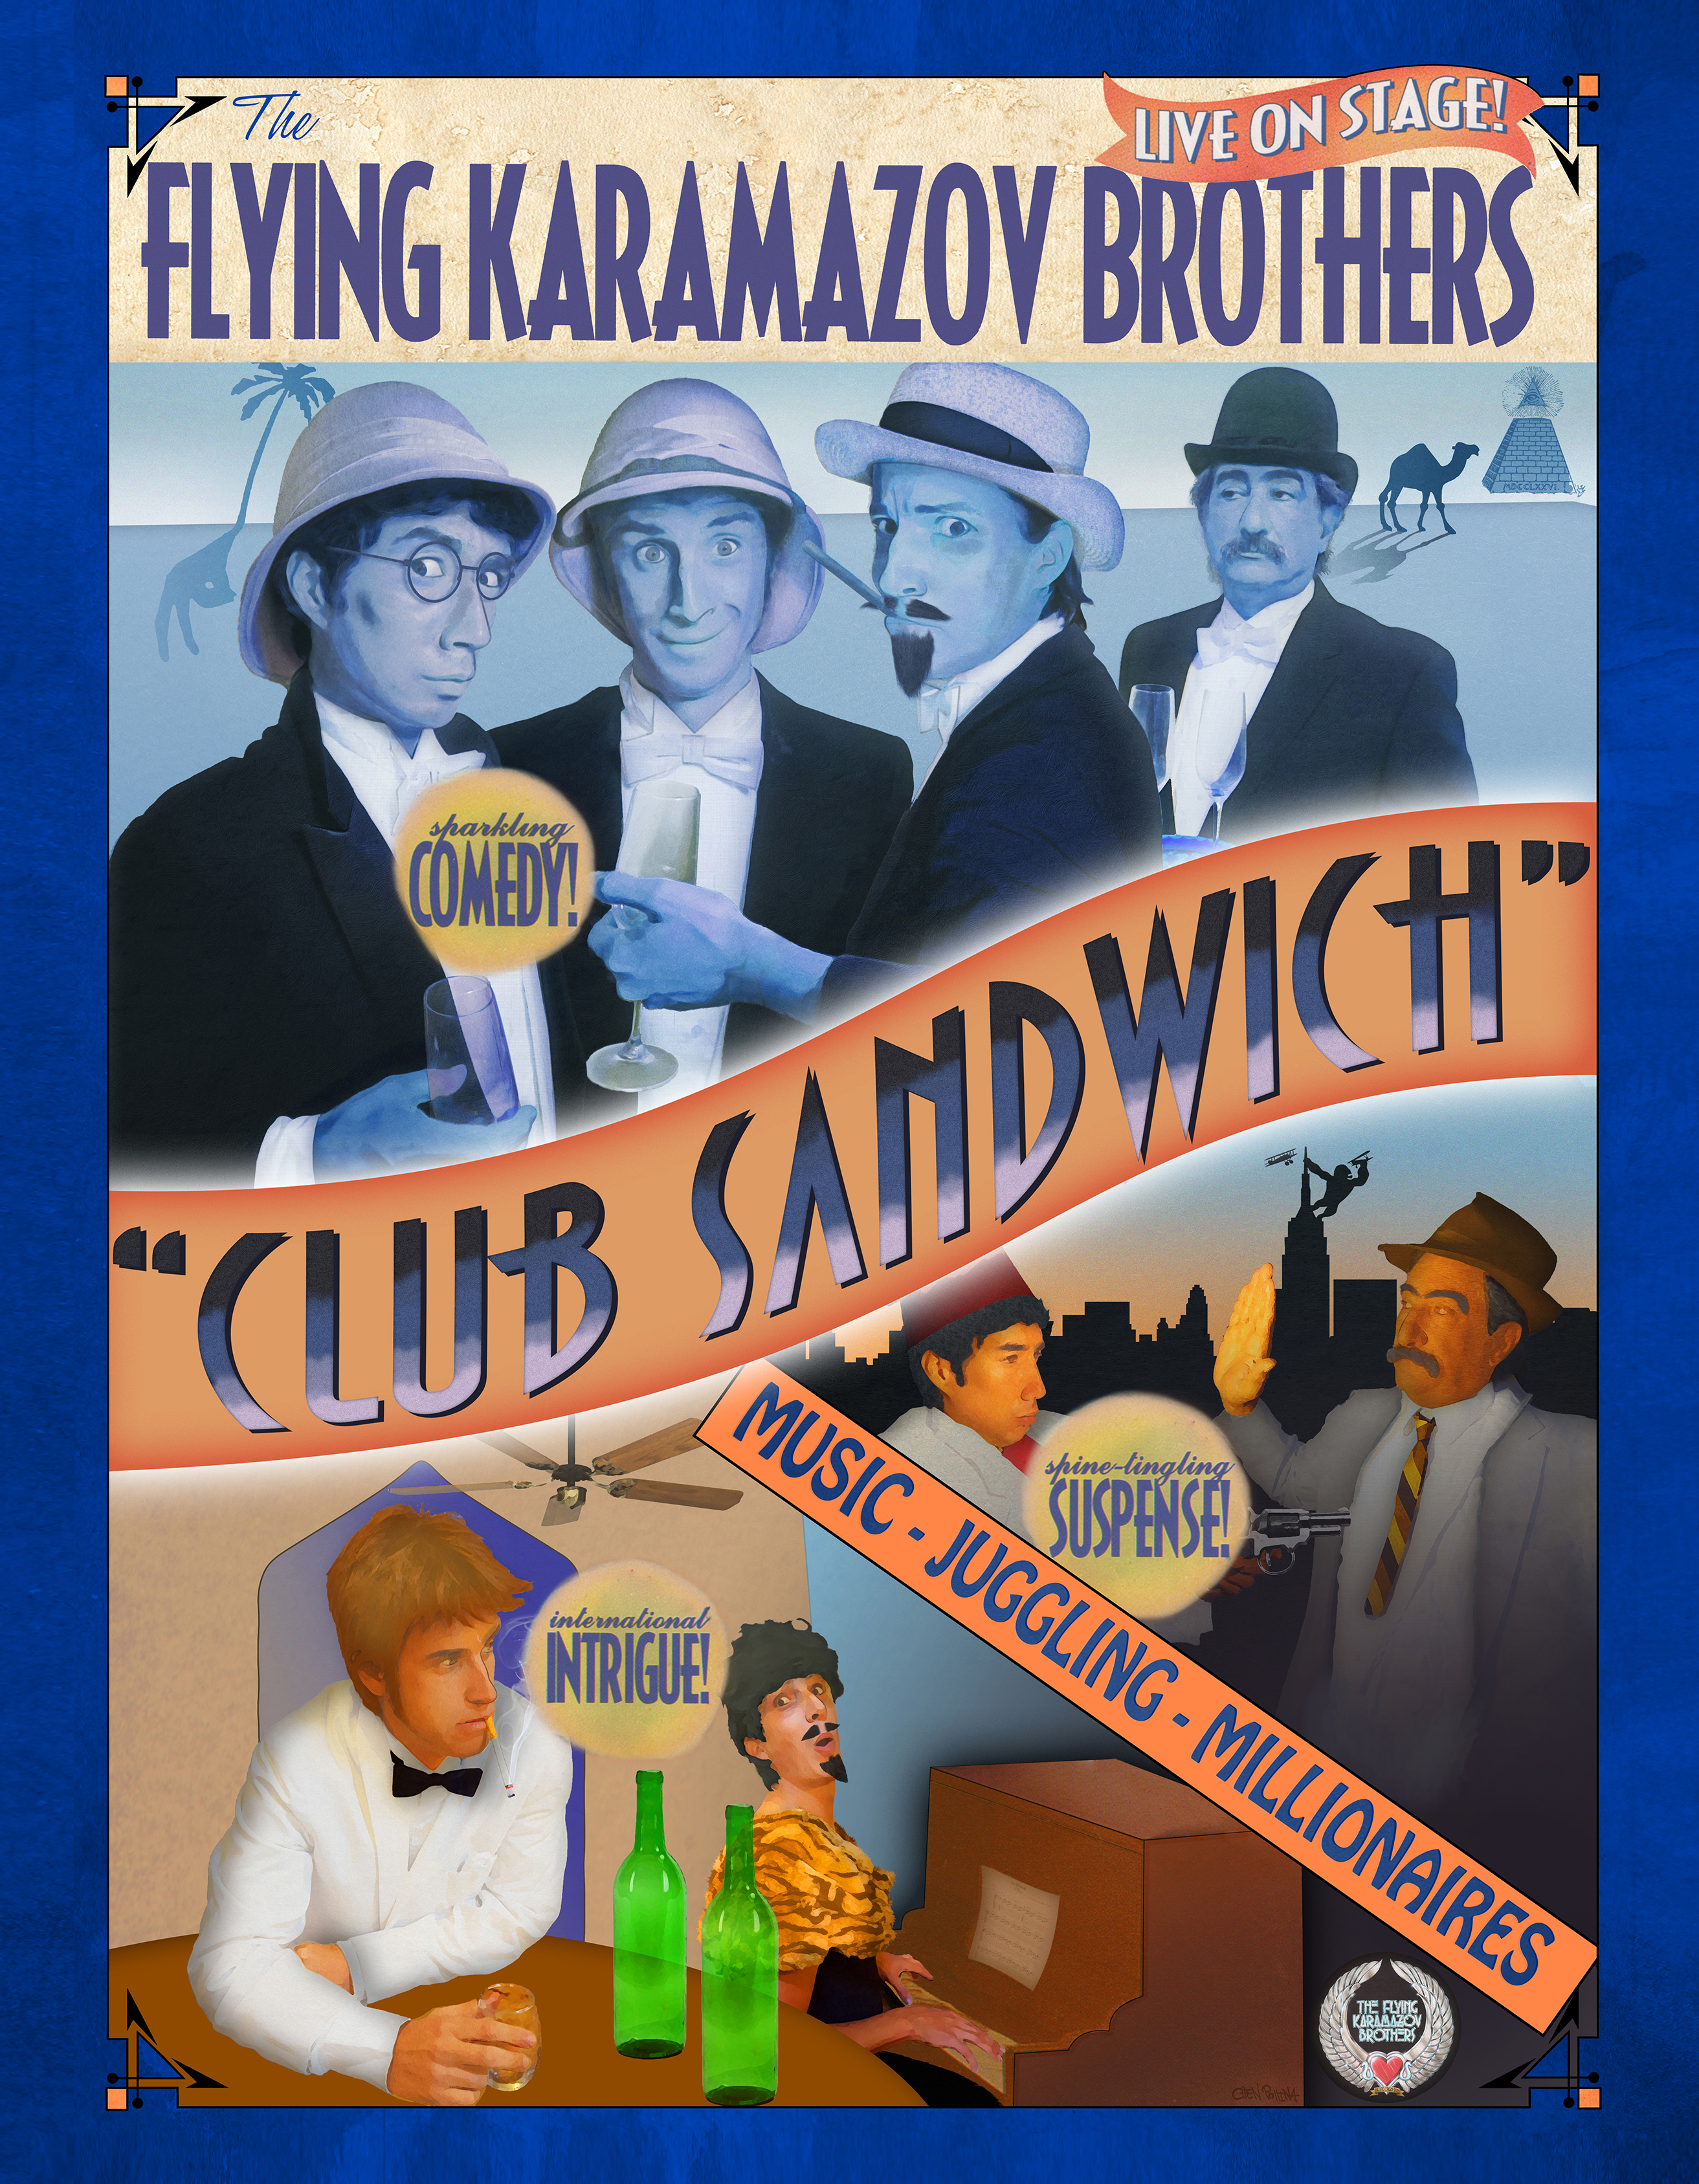 The Flying Karamazov Brothers - Poster - Club Sandwich